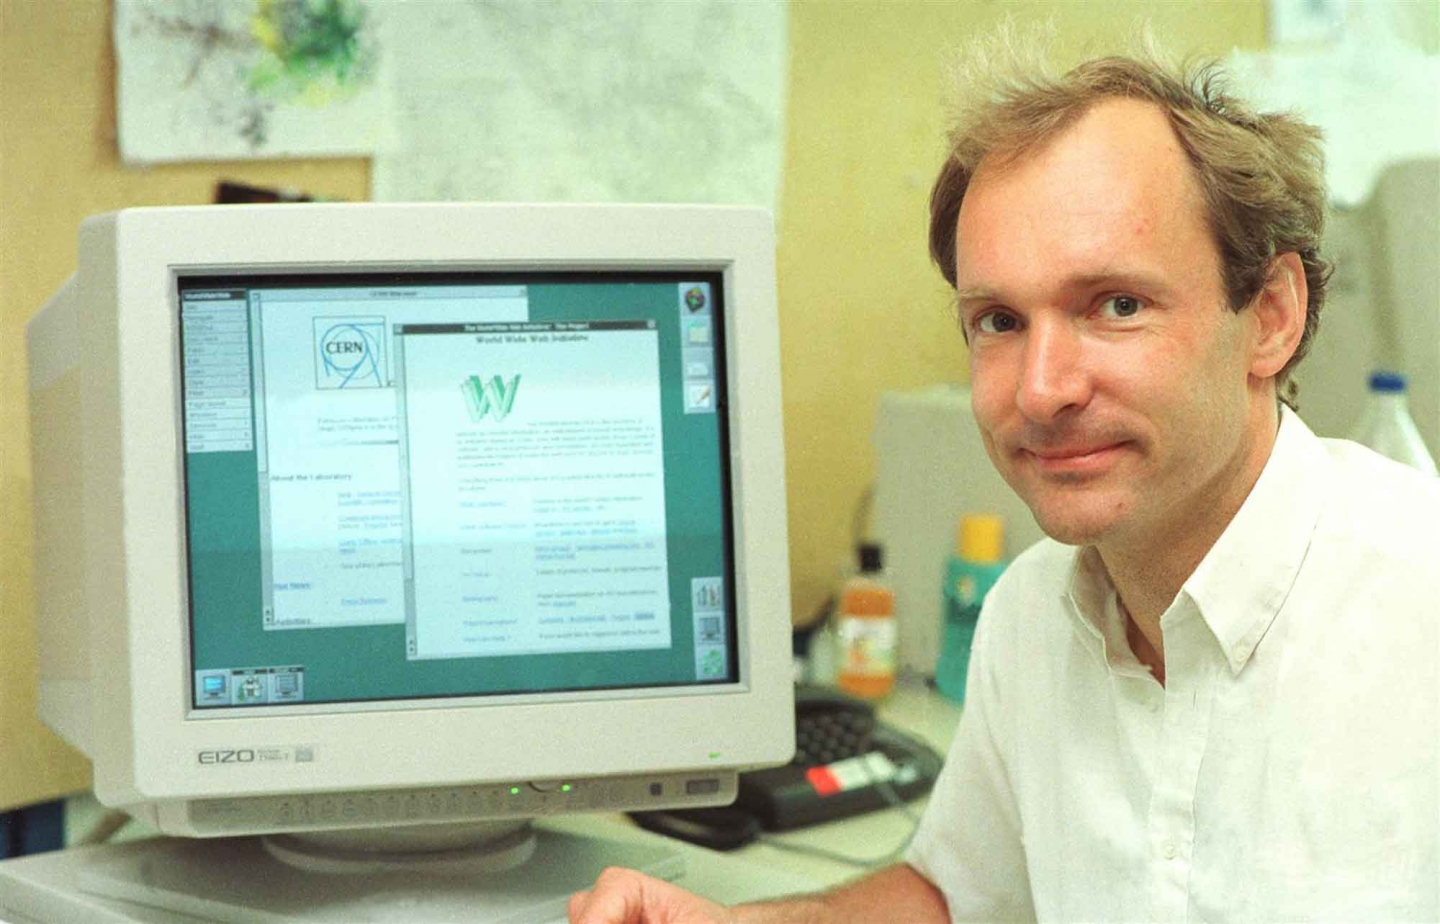 Berners-Lee in 1994 with his web browser.